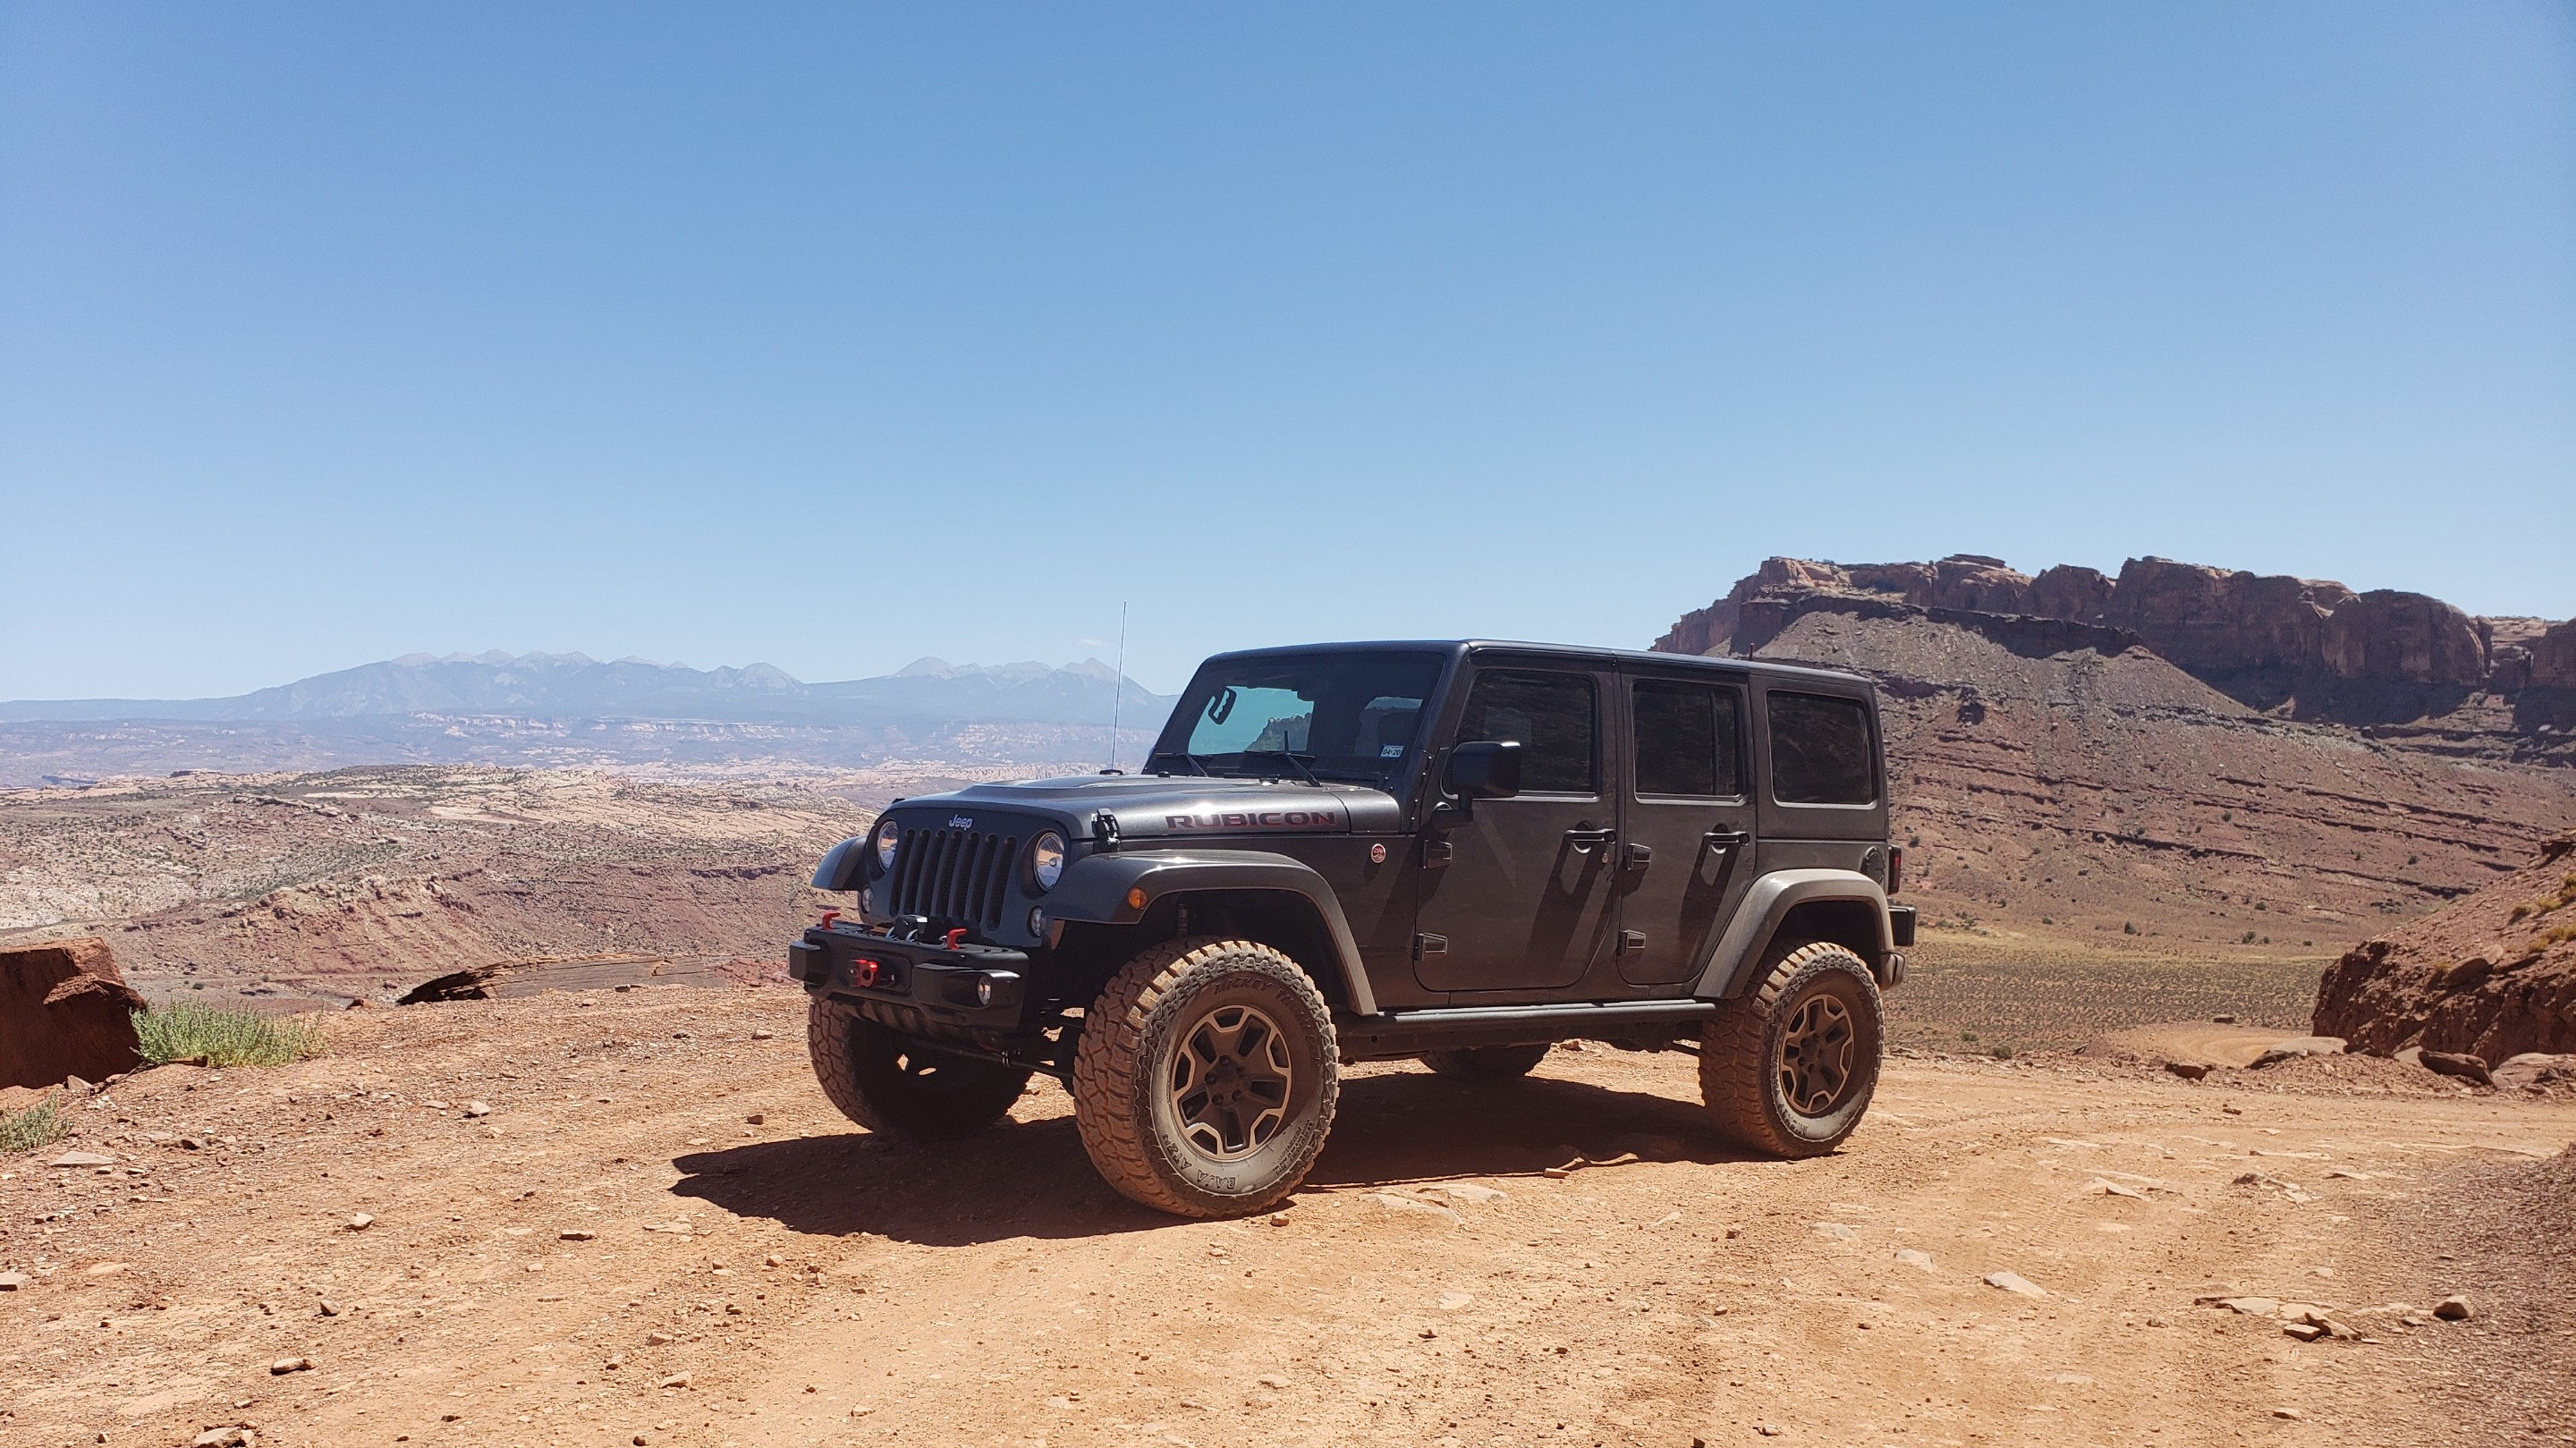 2016 Jeep Wrangler JKU Rubicon Hard Rock 4dr 4x4